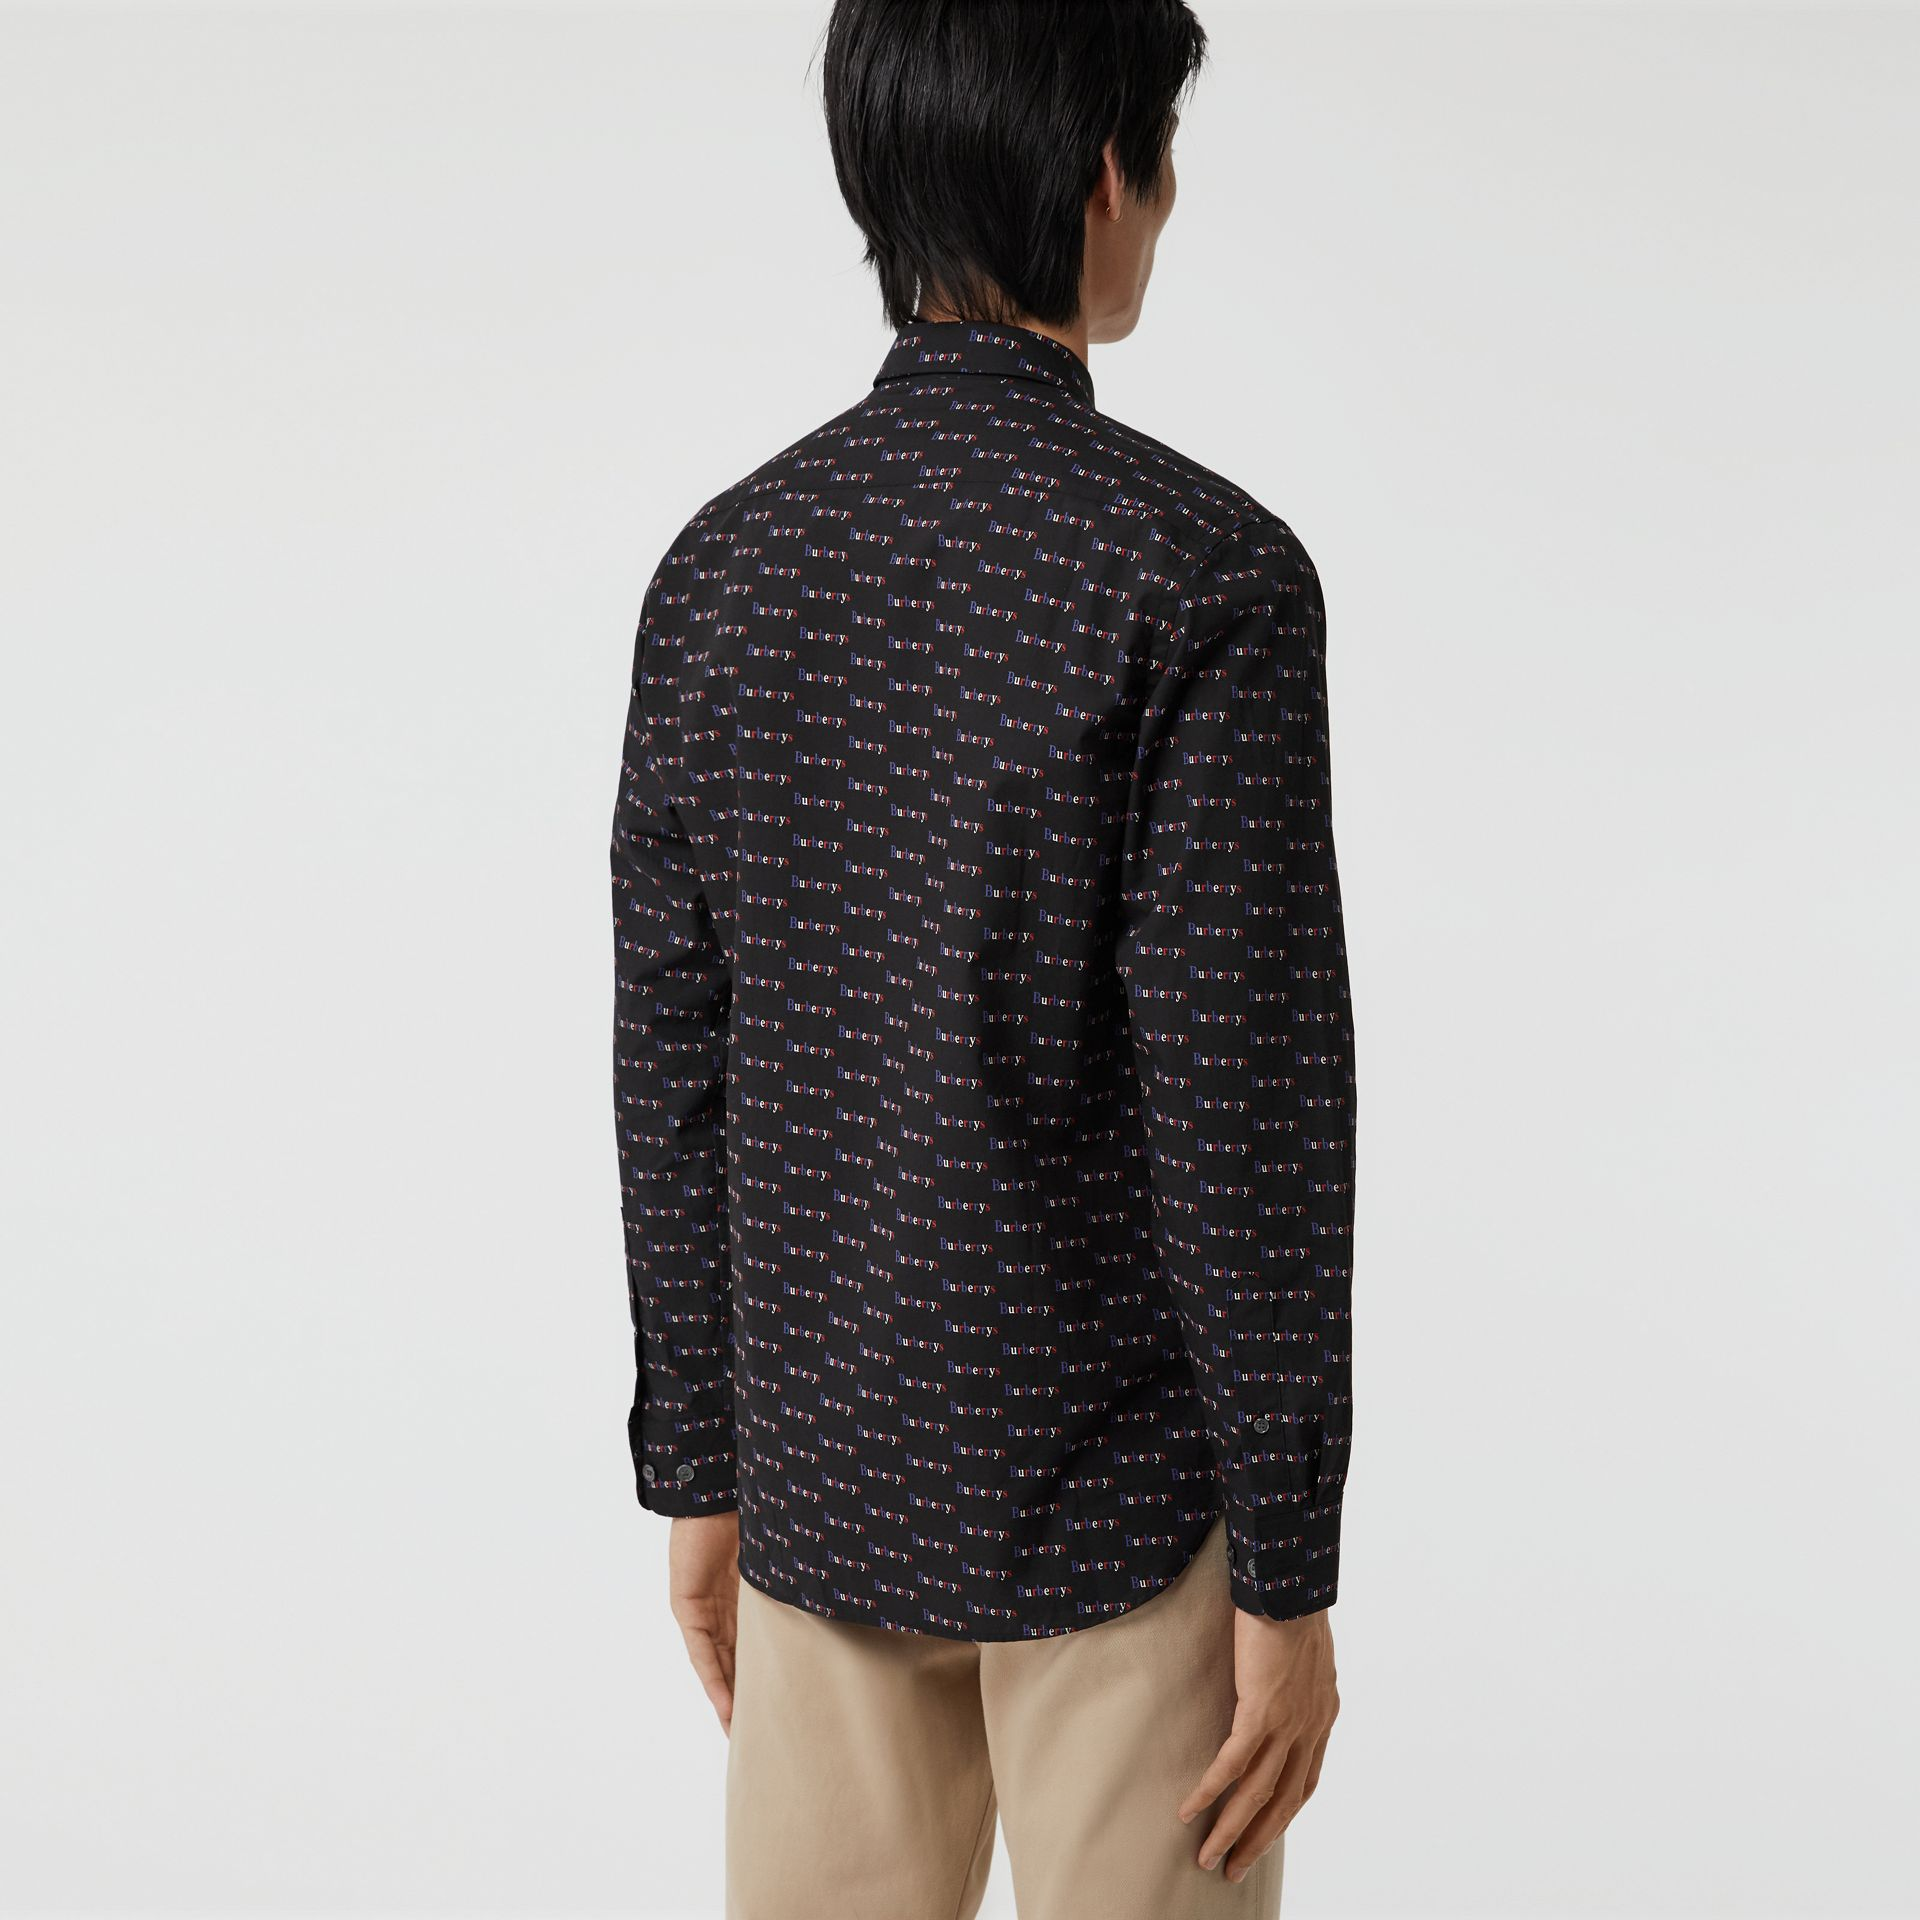 Logo Print Cotton Shirt in Black - Men | Burberry - gallery image 2